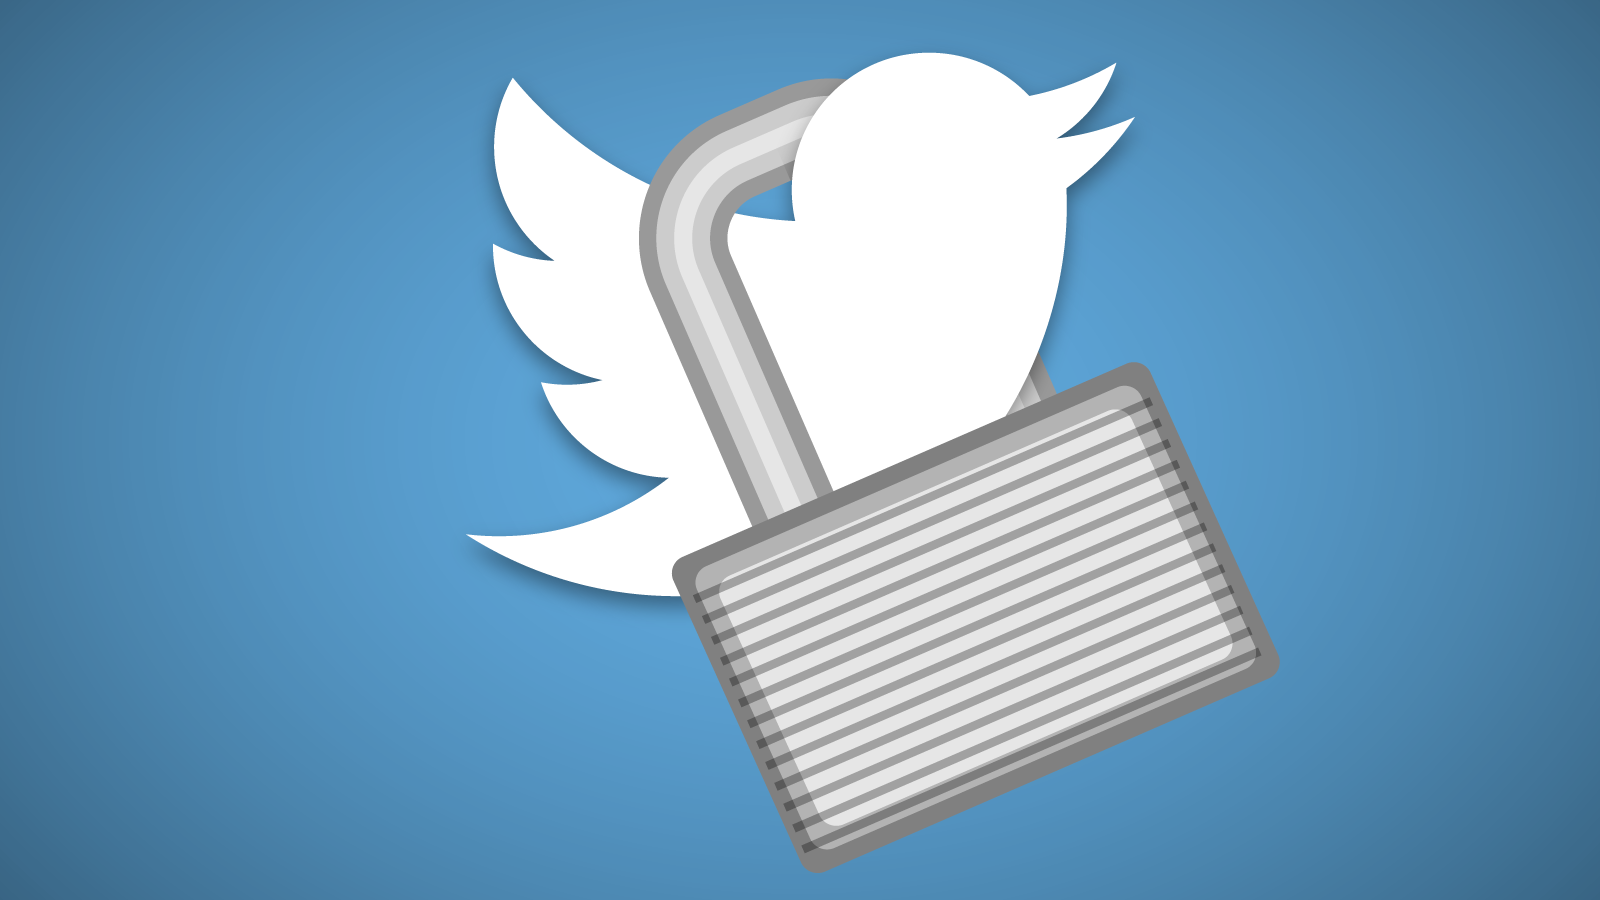 Twitter Testing 'Secret Conversations': How Does Encrypted Chat Feature Work?